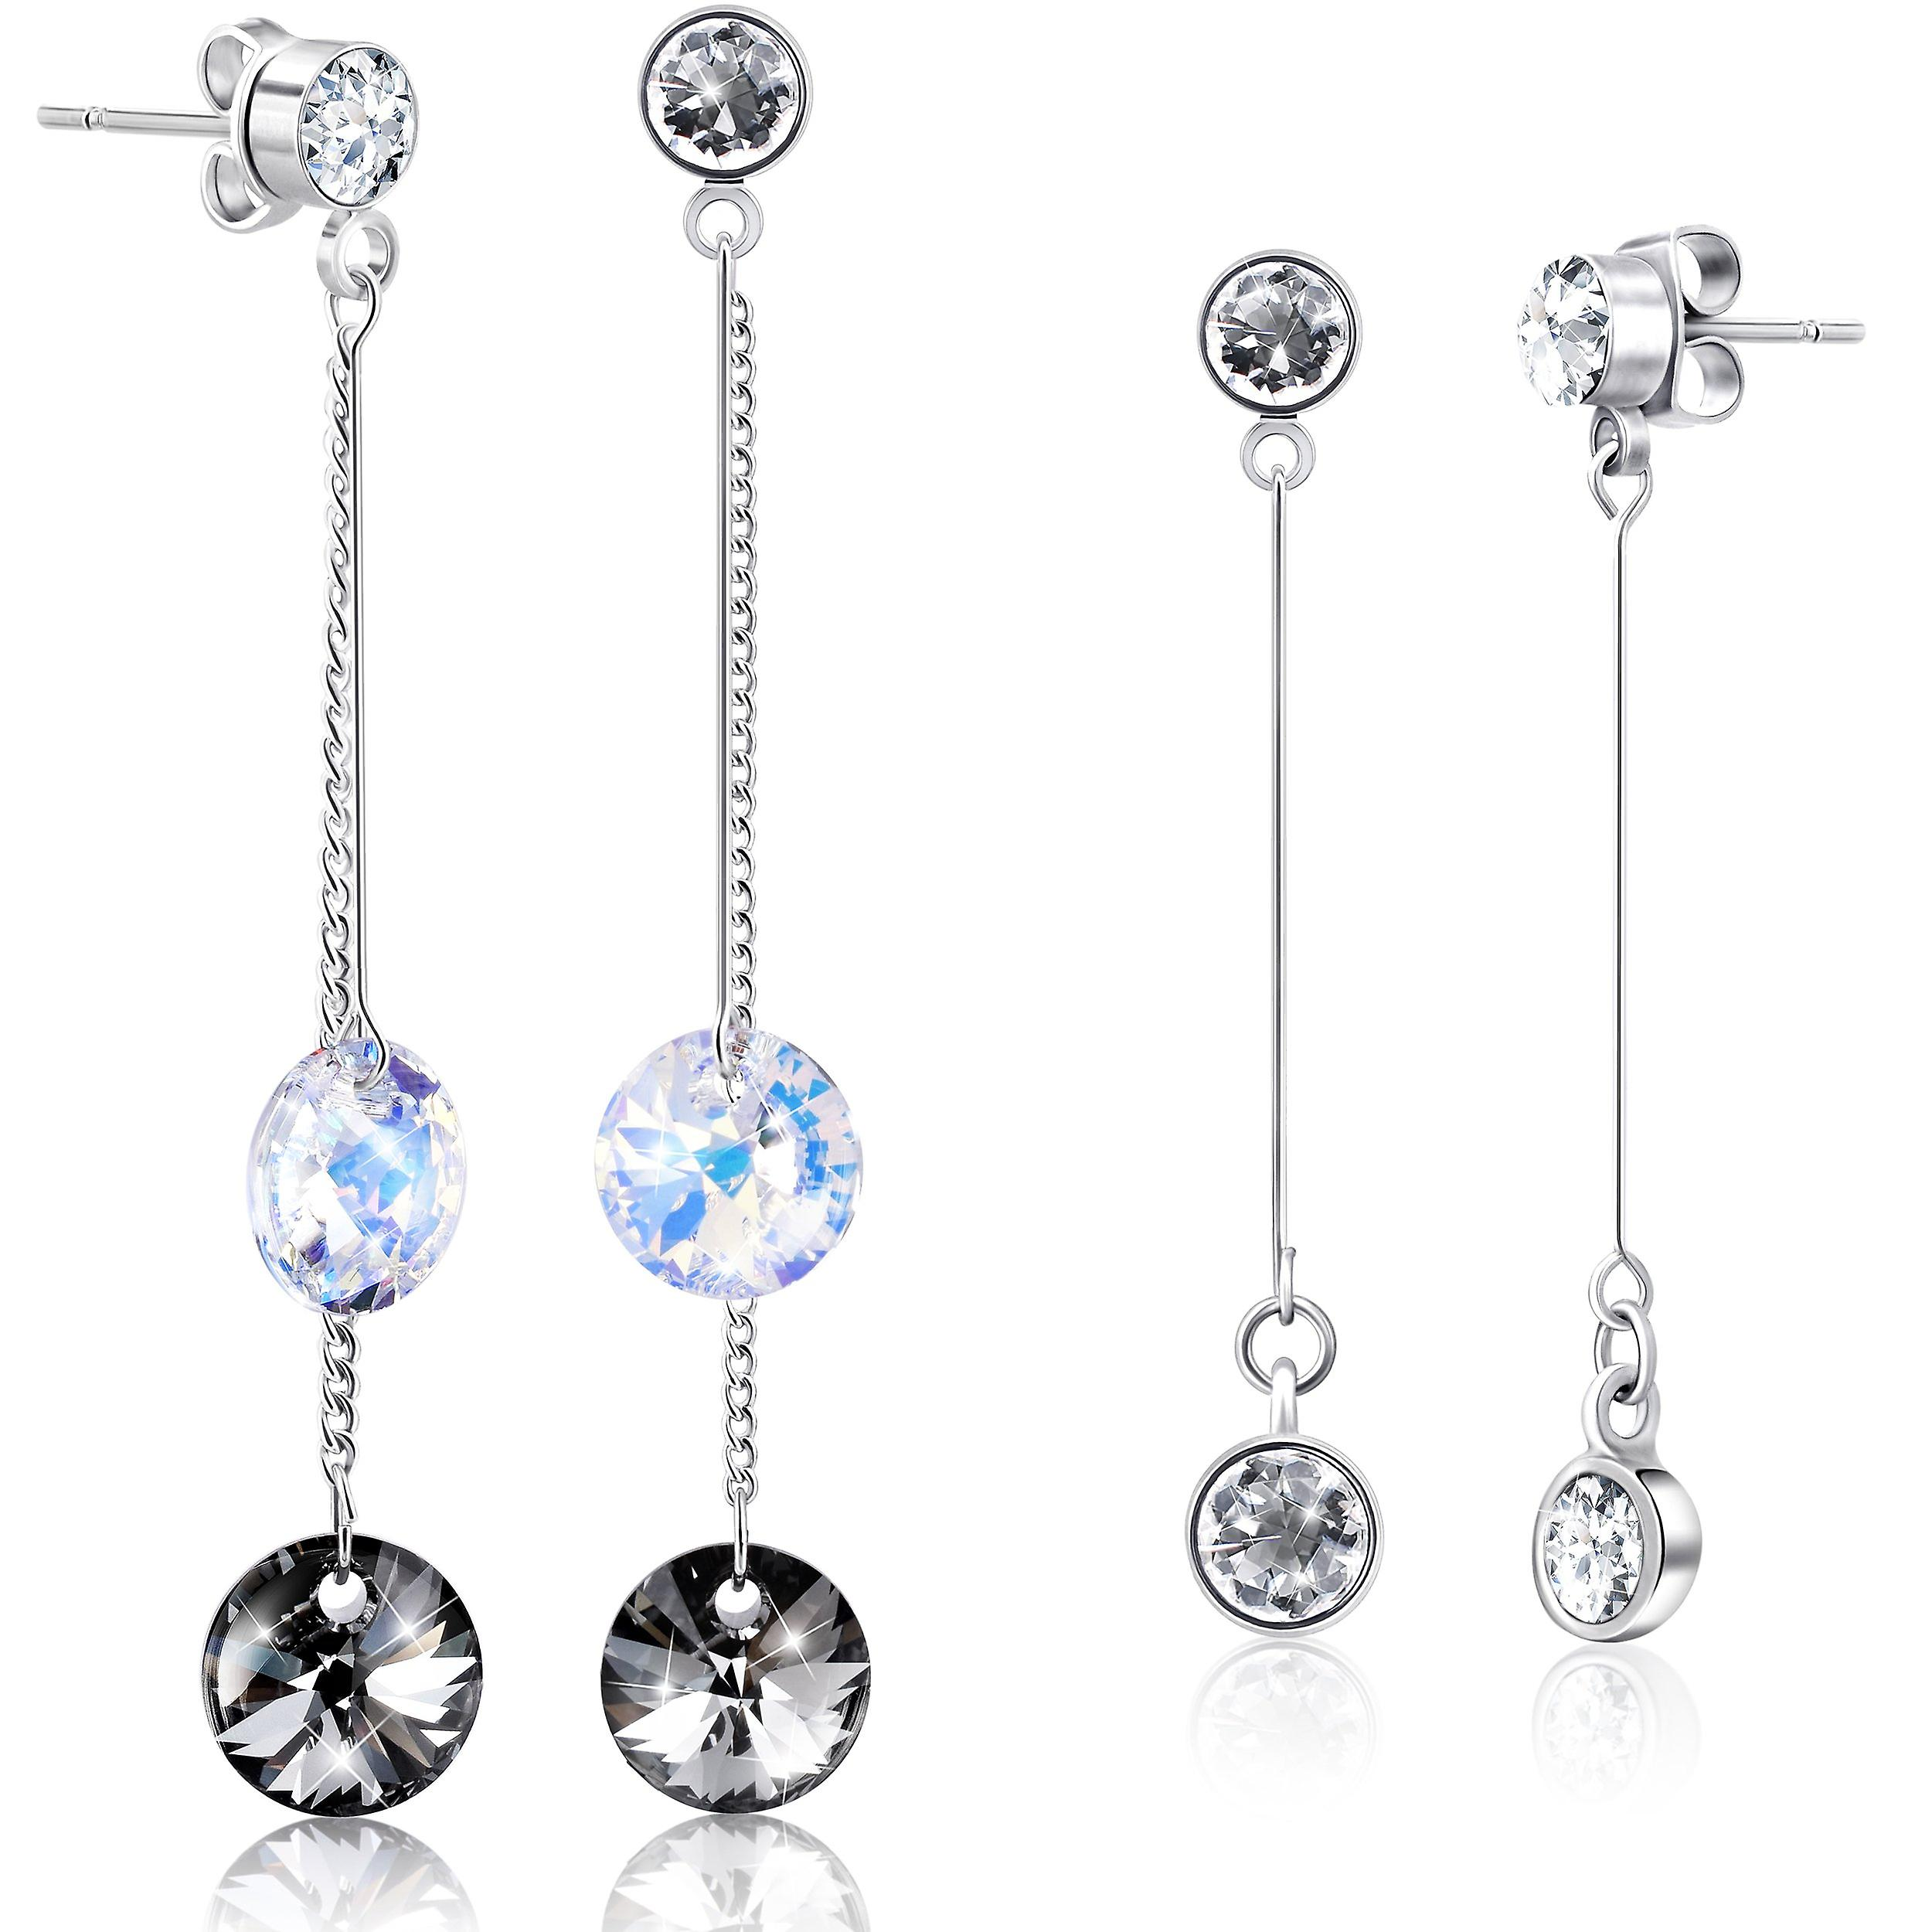 Set of 2 earrings by 2splendid. rhodium plated with swarovski crystals. box included. eeqz037-38